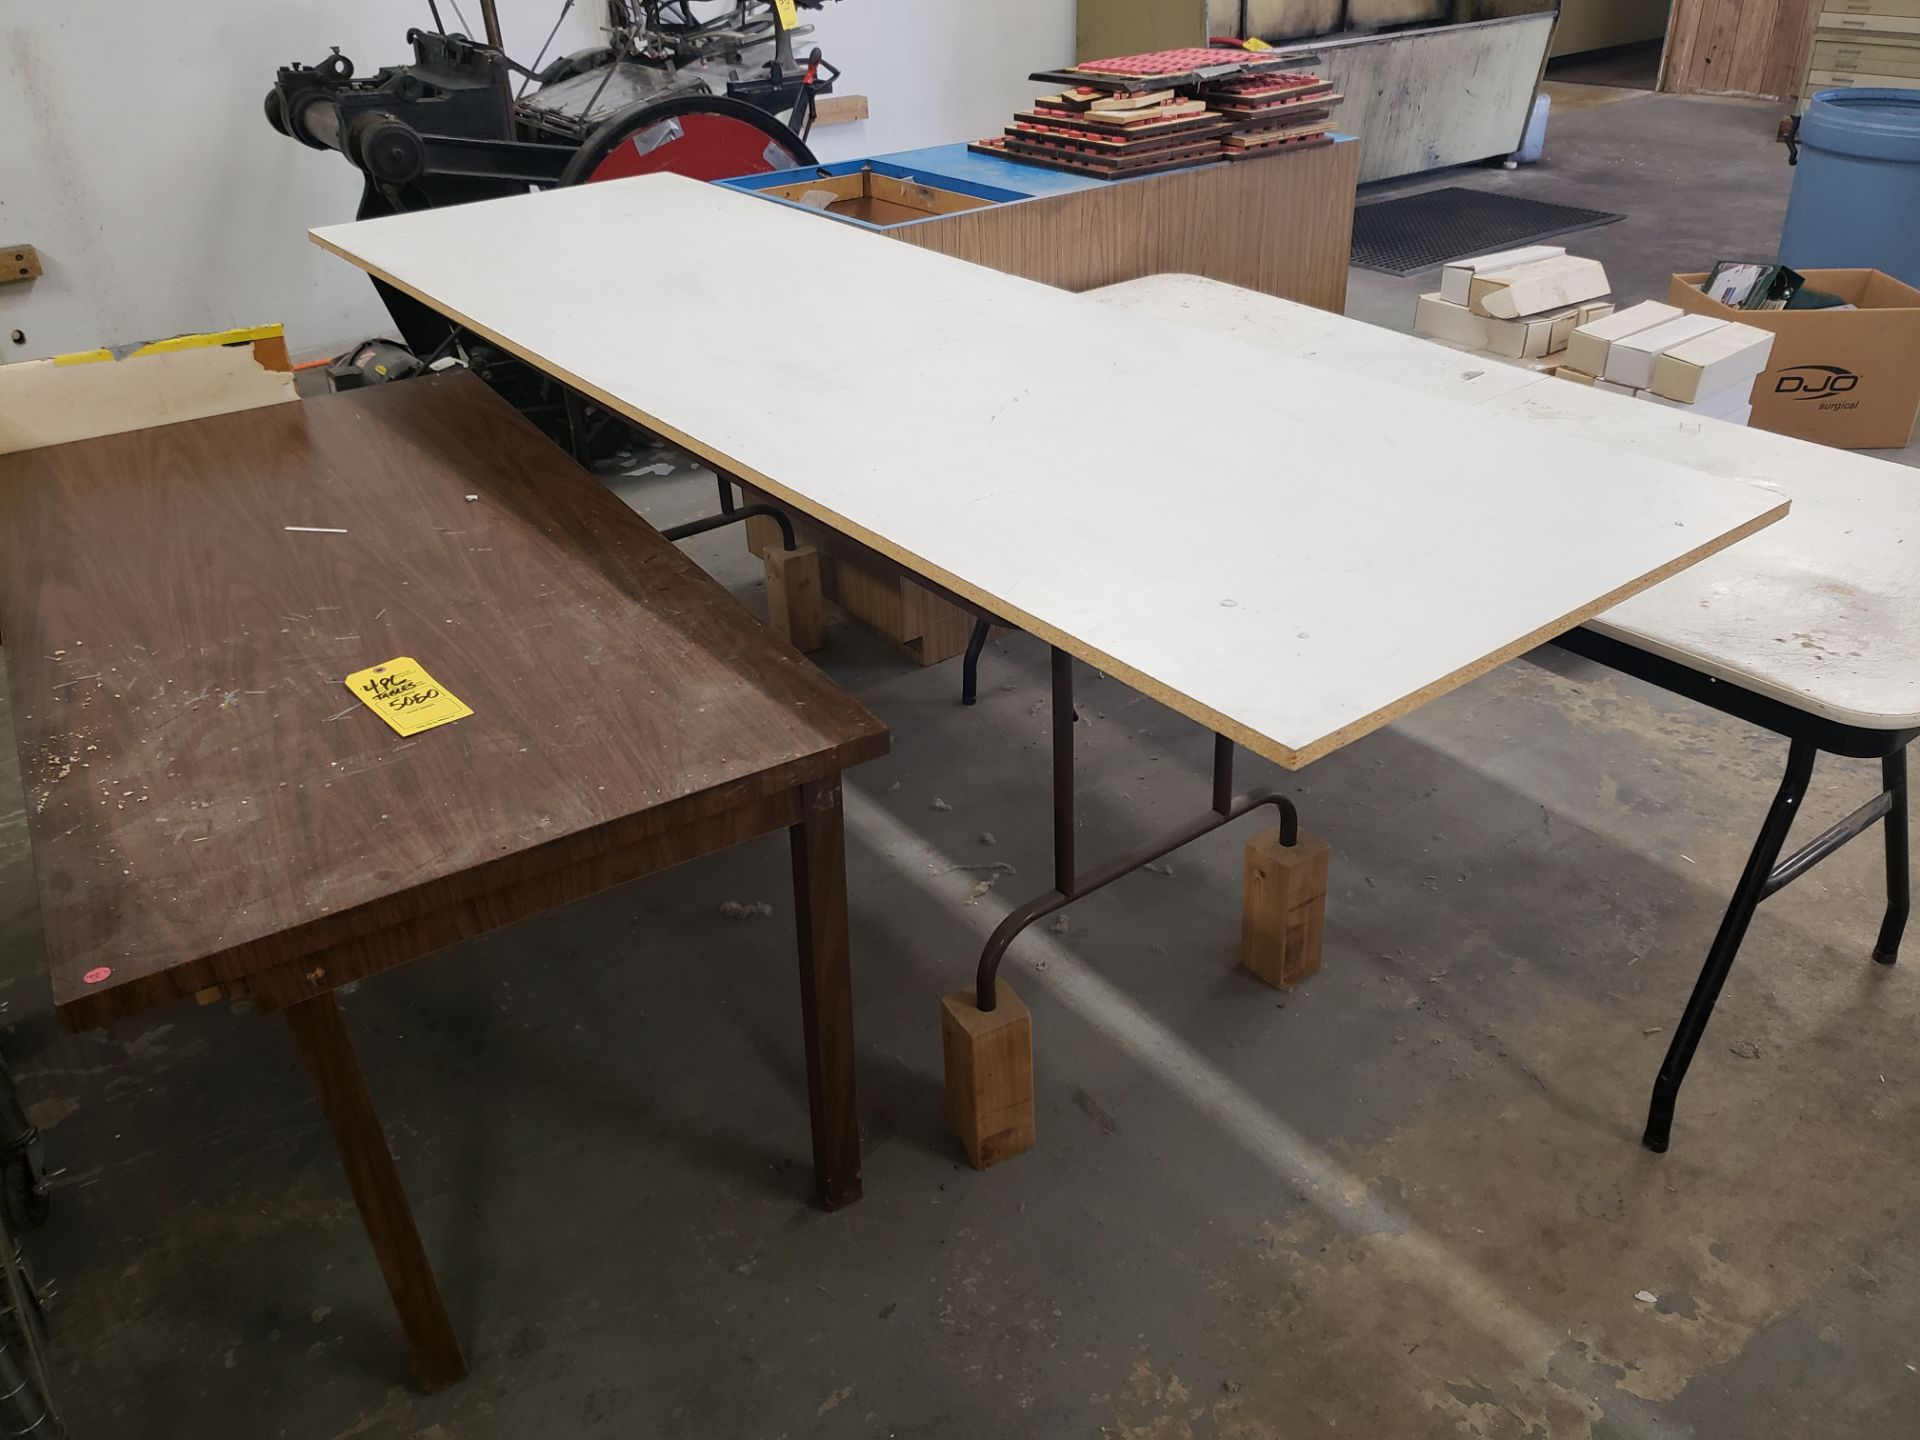 Lot 5050 - LOT OF (3) TABLES & (1) CABINET (LOCATED AT: 16335 LIMA ROAD BLDG. 4 HUNTERTOWN, IN 46748)